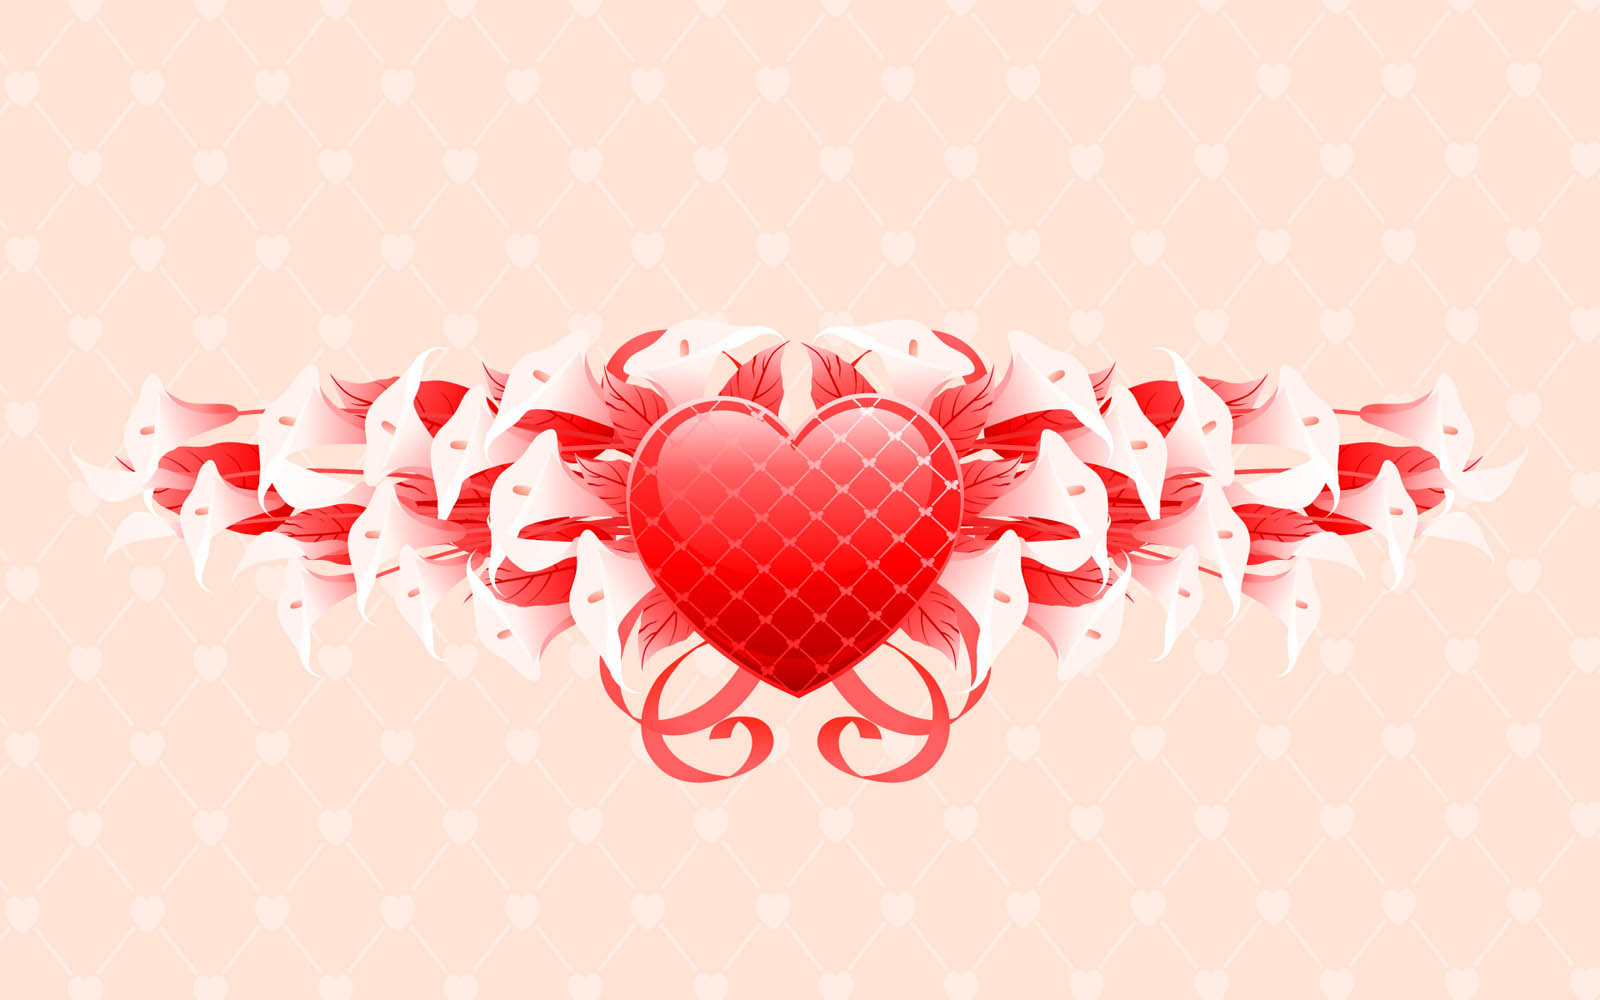 Love Wallpaper Hd 2012 : wallpapers: Vector Love Wallpapers